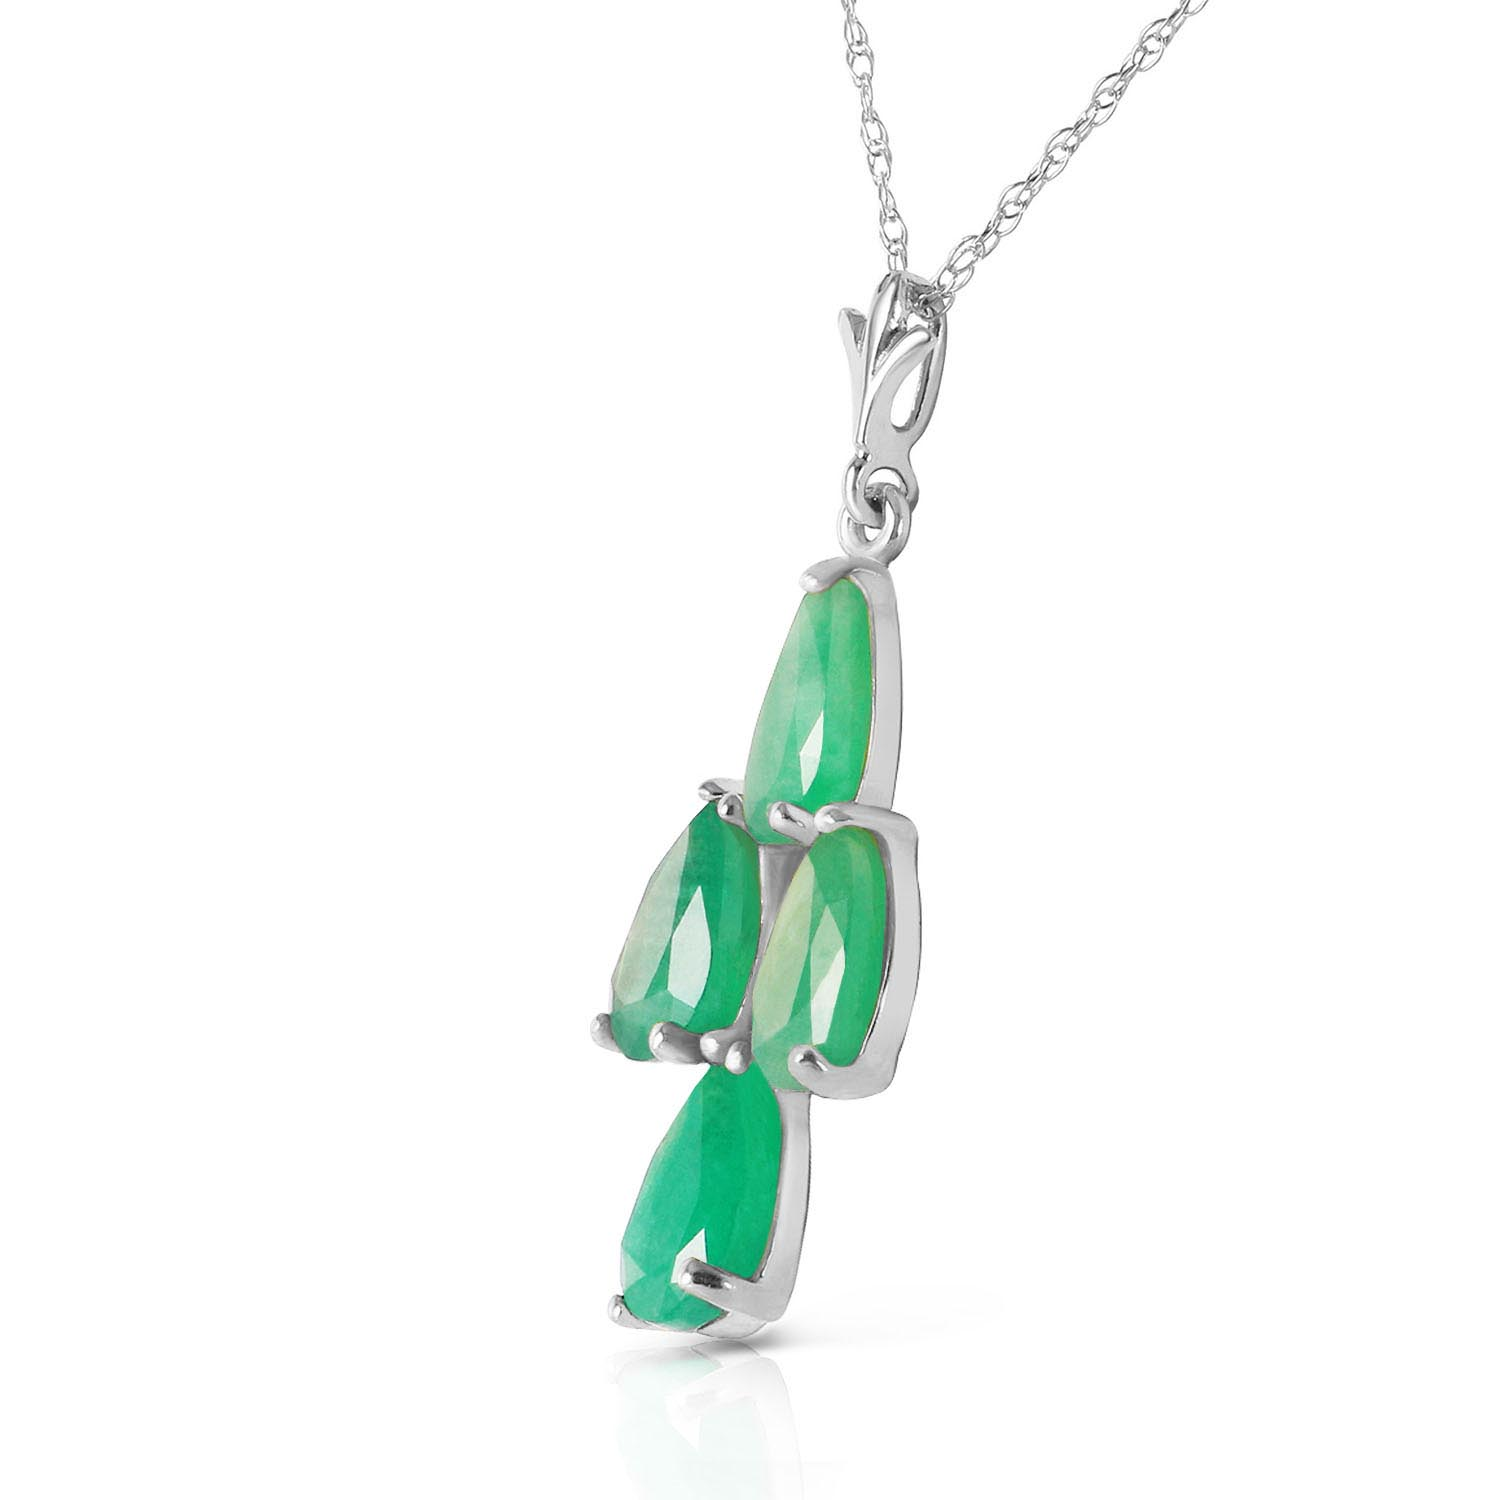 Pear Cut Emerald Pendant Necklace 1.5ctw in 9ct White Gold